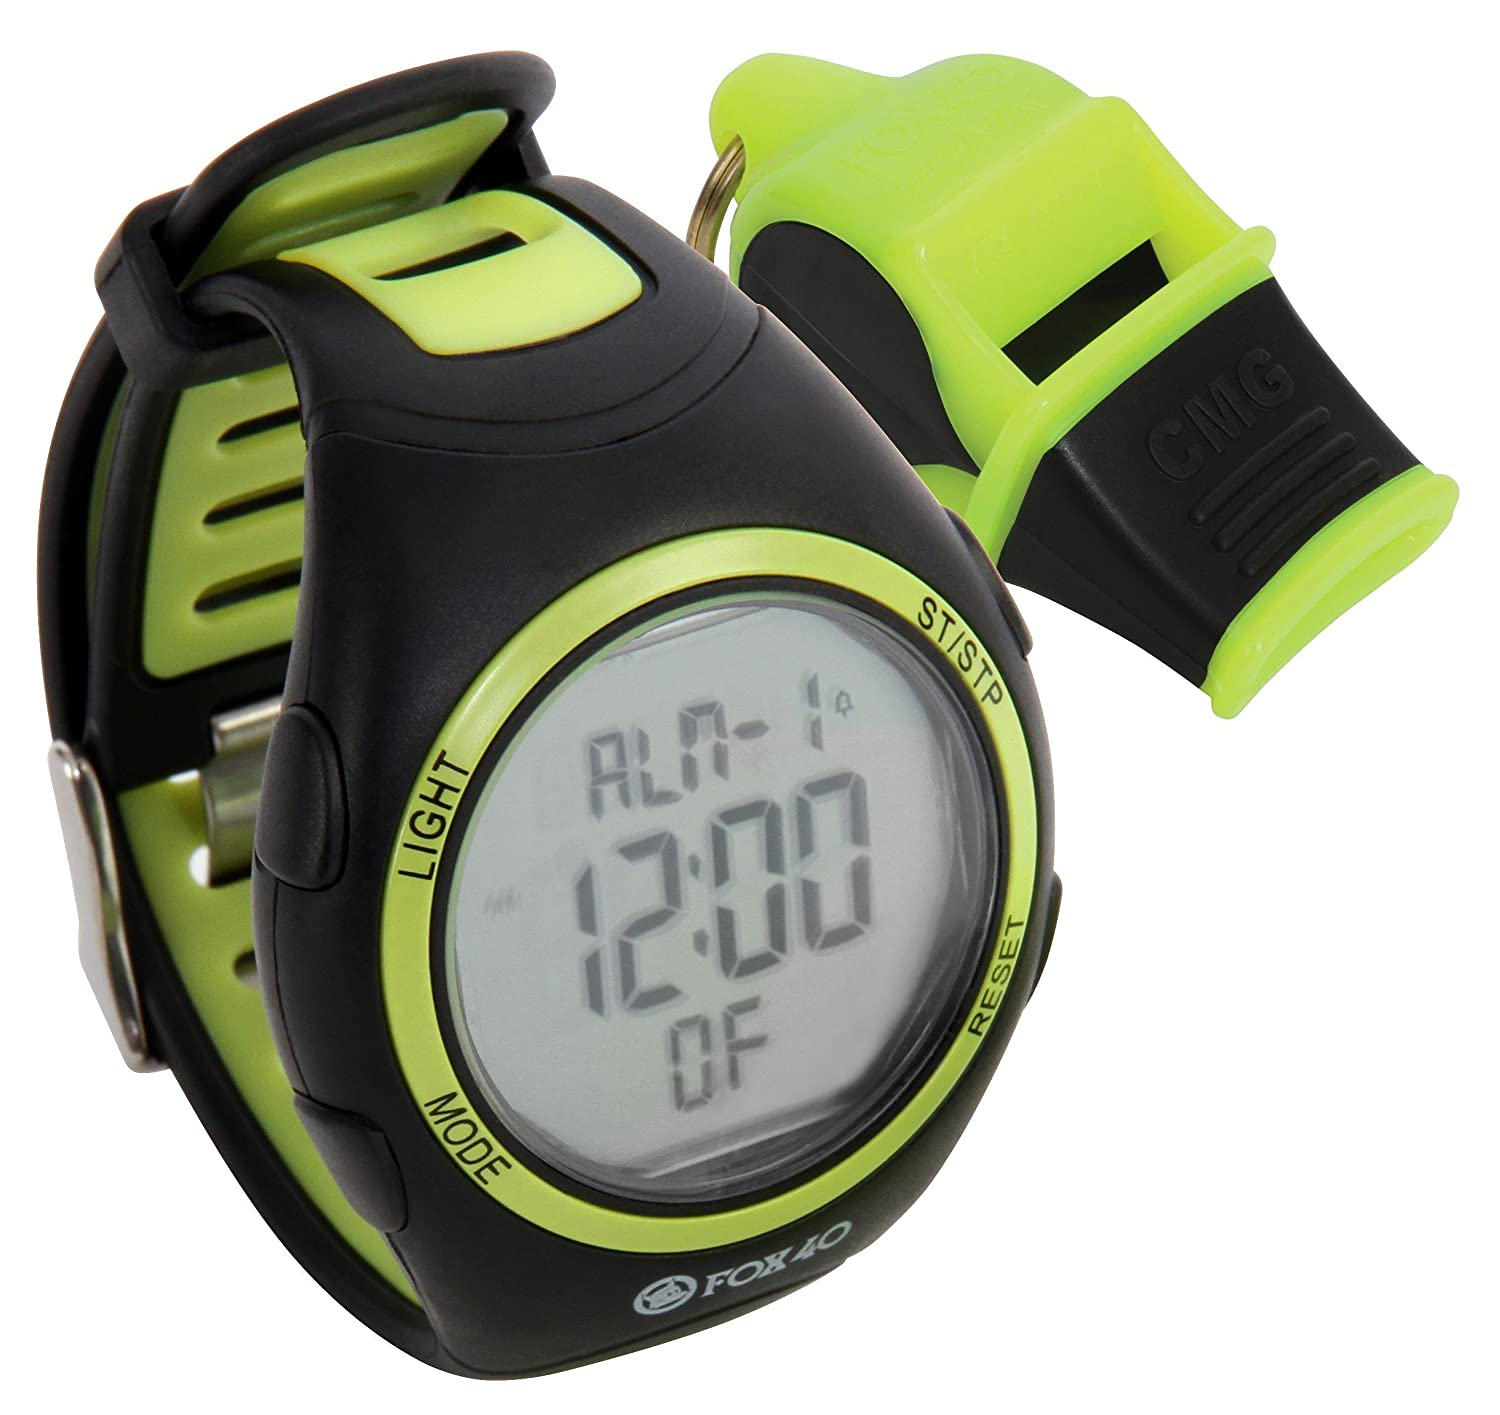 FOX 40 Whistle watch reloj + Sonik Blast CMG amarillo/negro